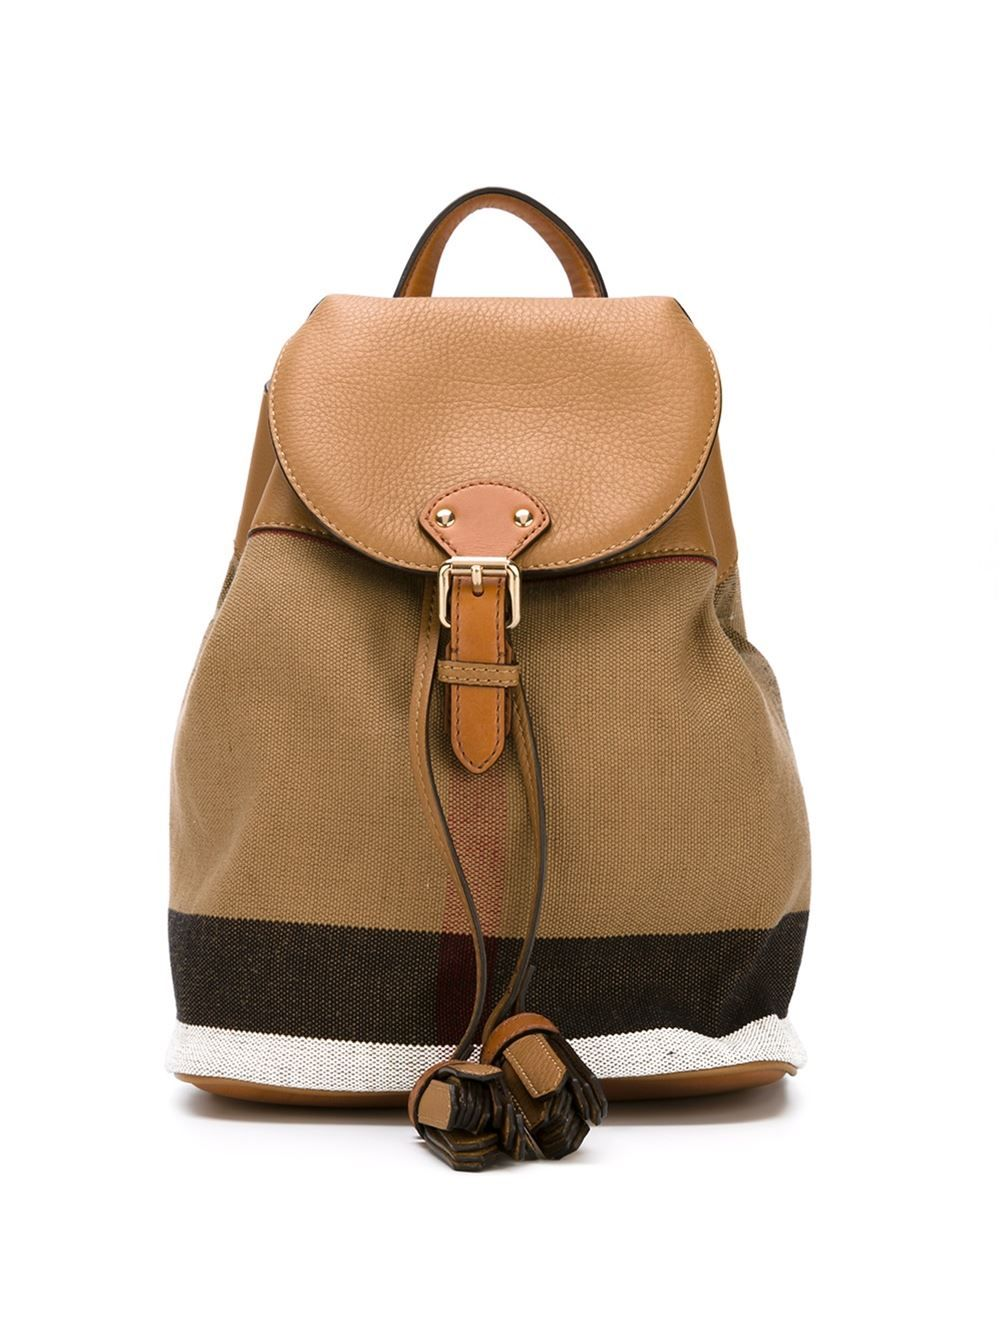 Burberry Kids House check backpack   Expedition - Burberry kids ... 8dd00dd73724